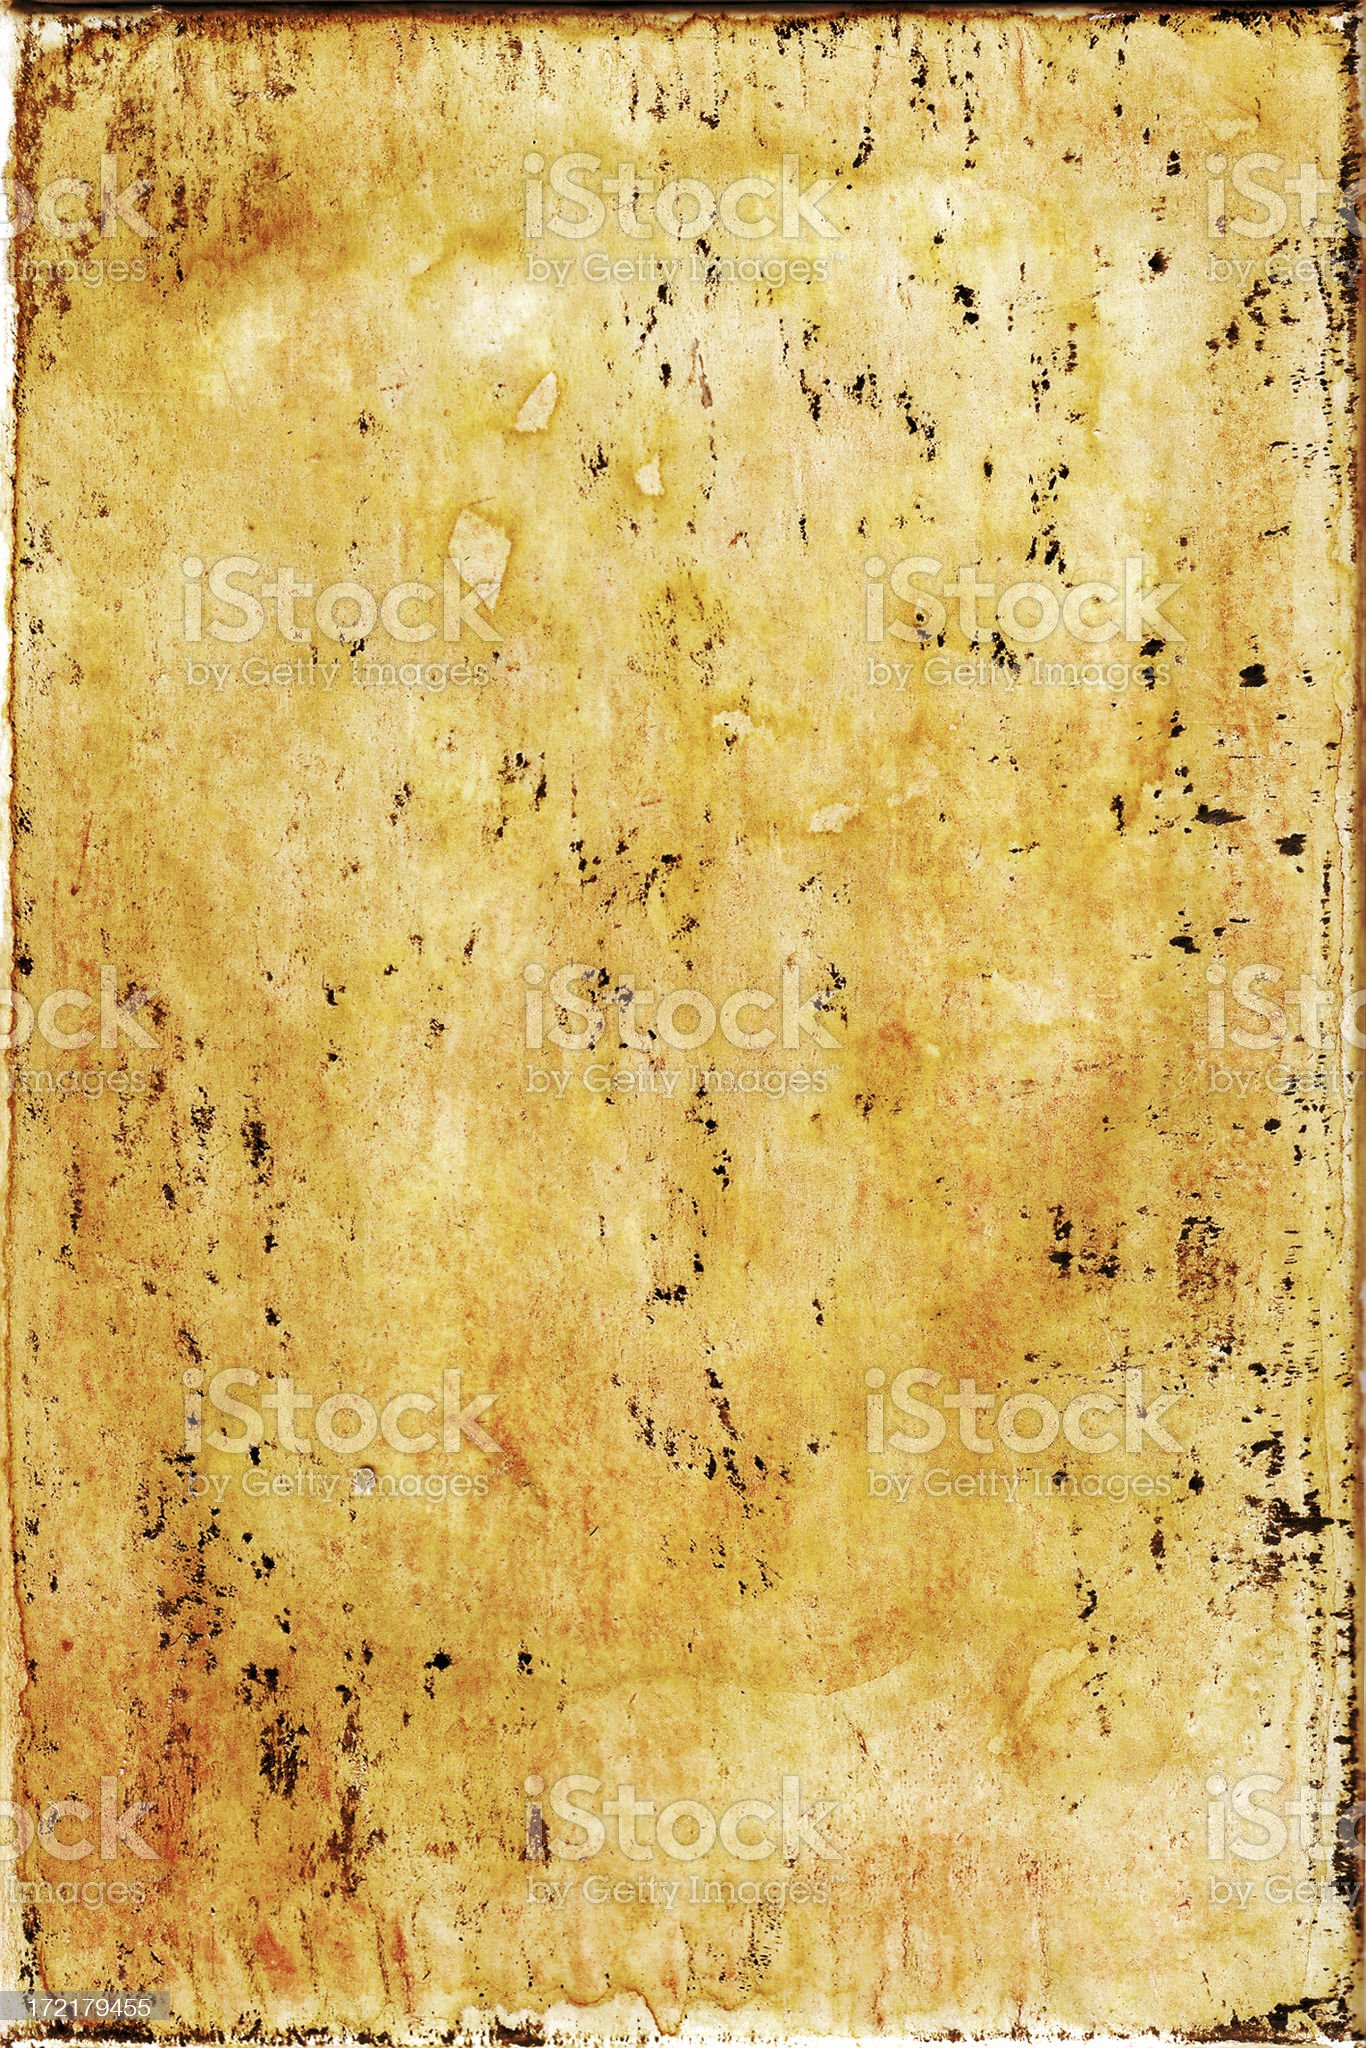 abstract grunge paper dirty spots and edges borders royalty-free stock photo